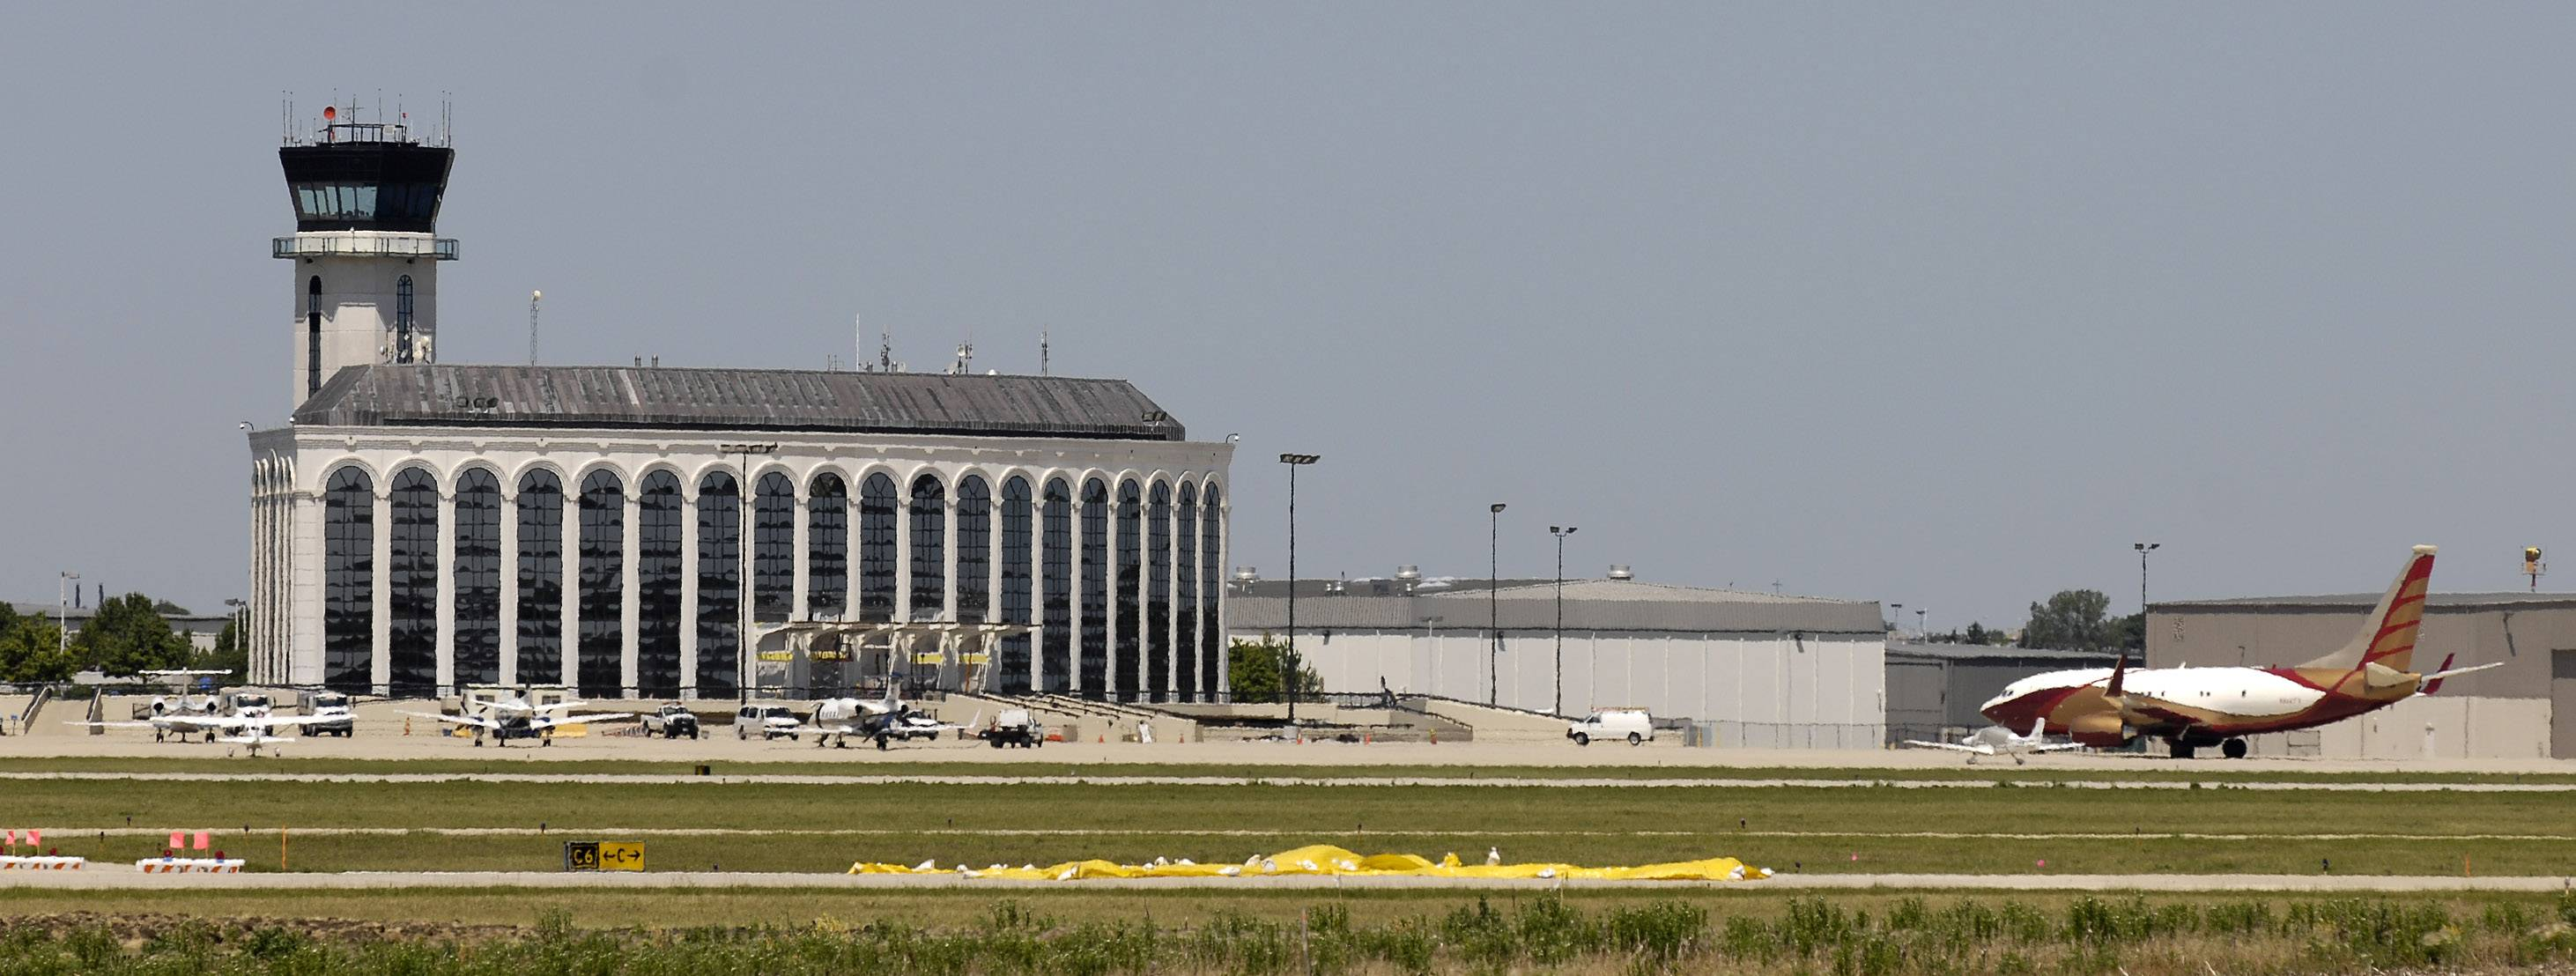 DuPage Airport tenants who don't pay their property taxes would be at risk of prosecution under a bill headed to Gov. J.B. Pritzker's office desk.